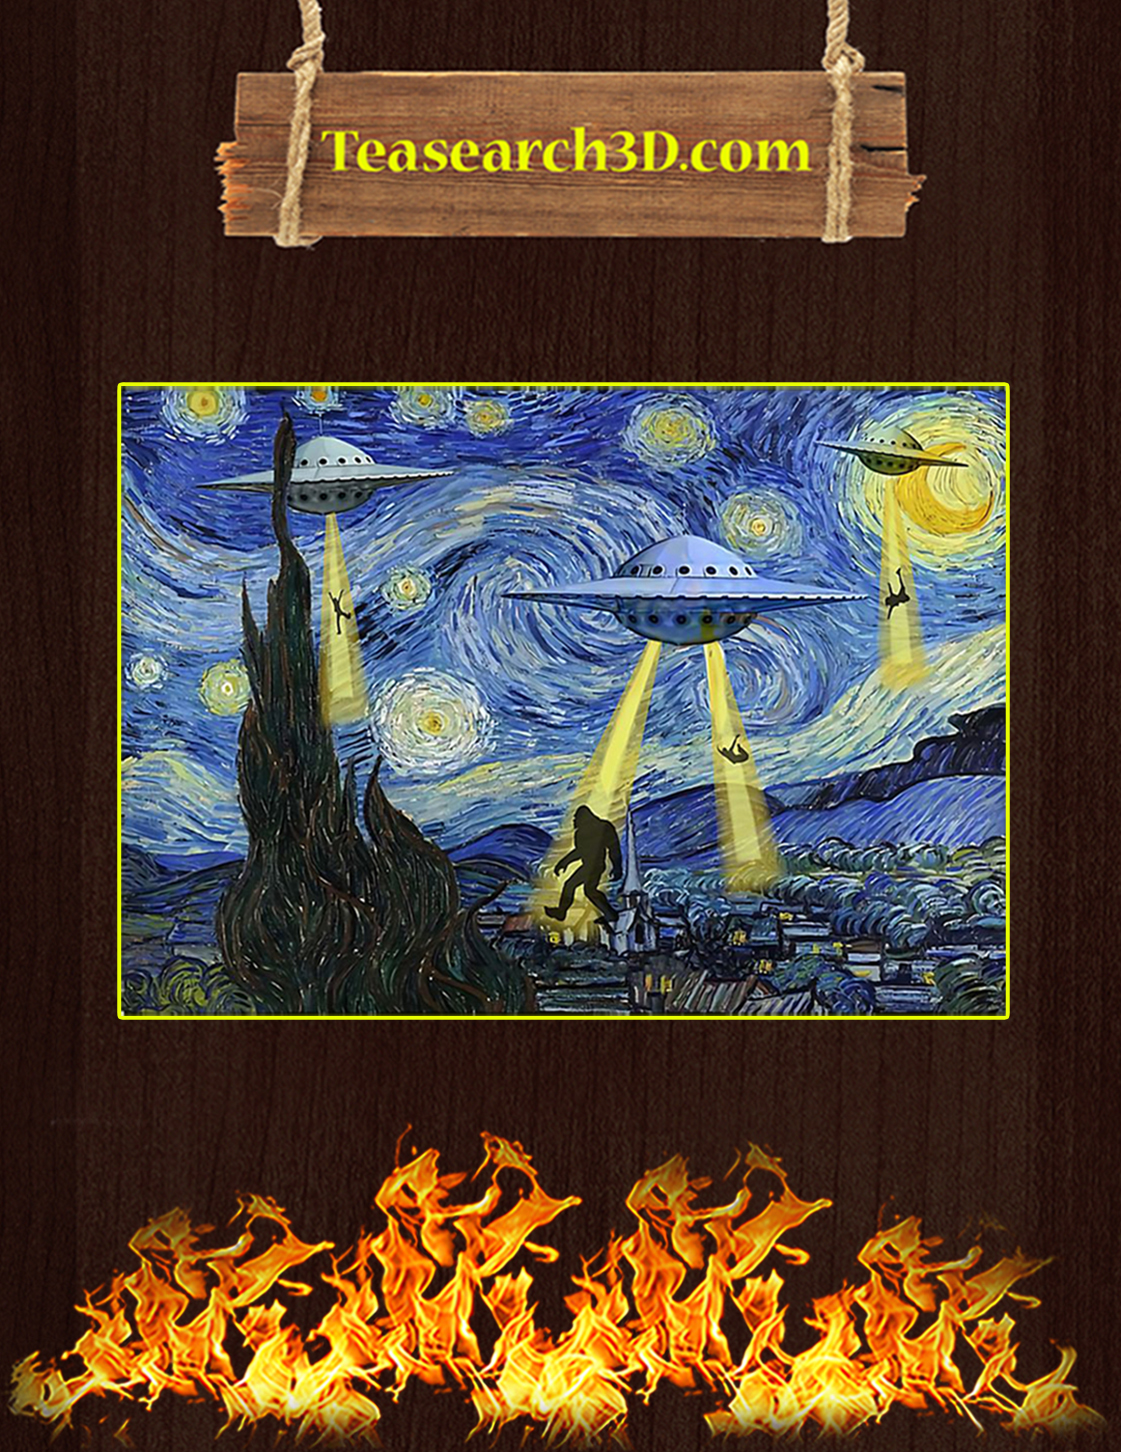 Ufo sighting starry night van gogh poster A3